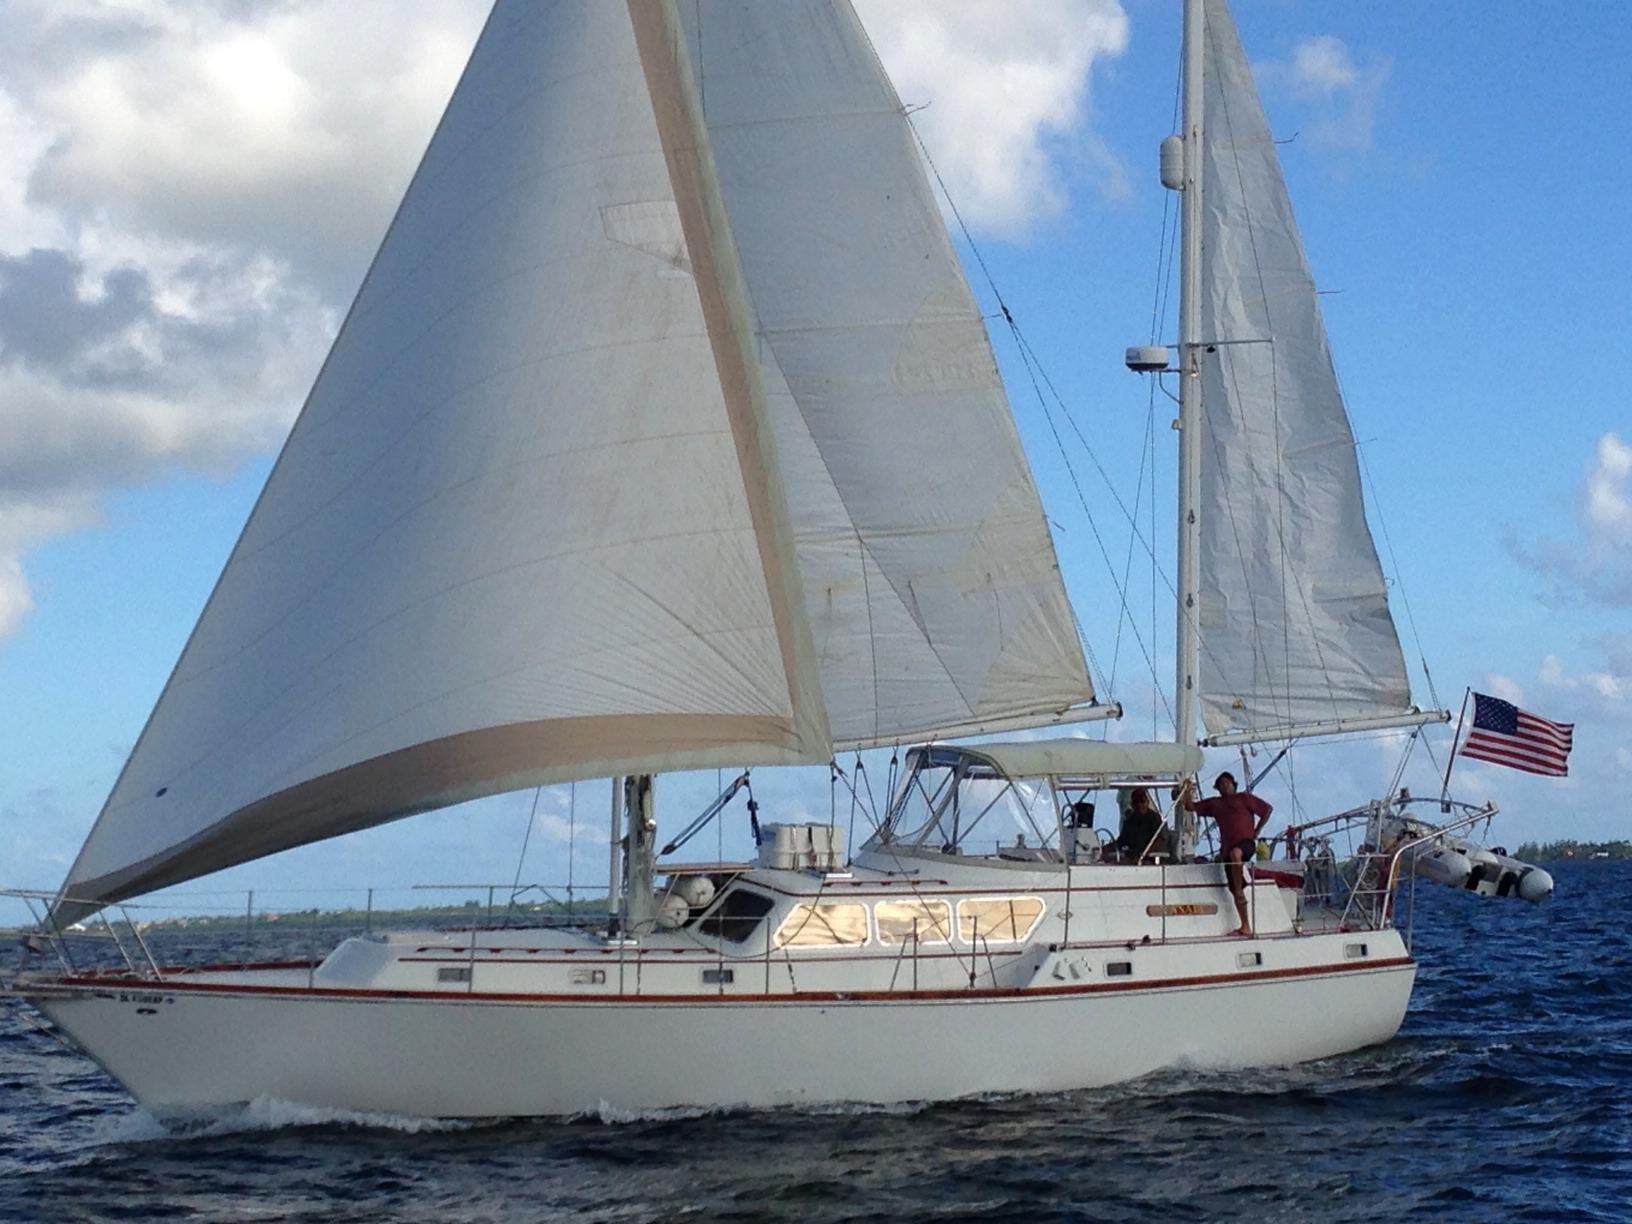 Gulfstar 47 Sailmaster Ketch (2010 Totally Repowered & Updated!), St. Petersburg